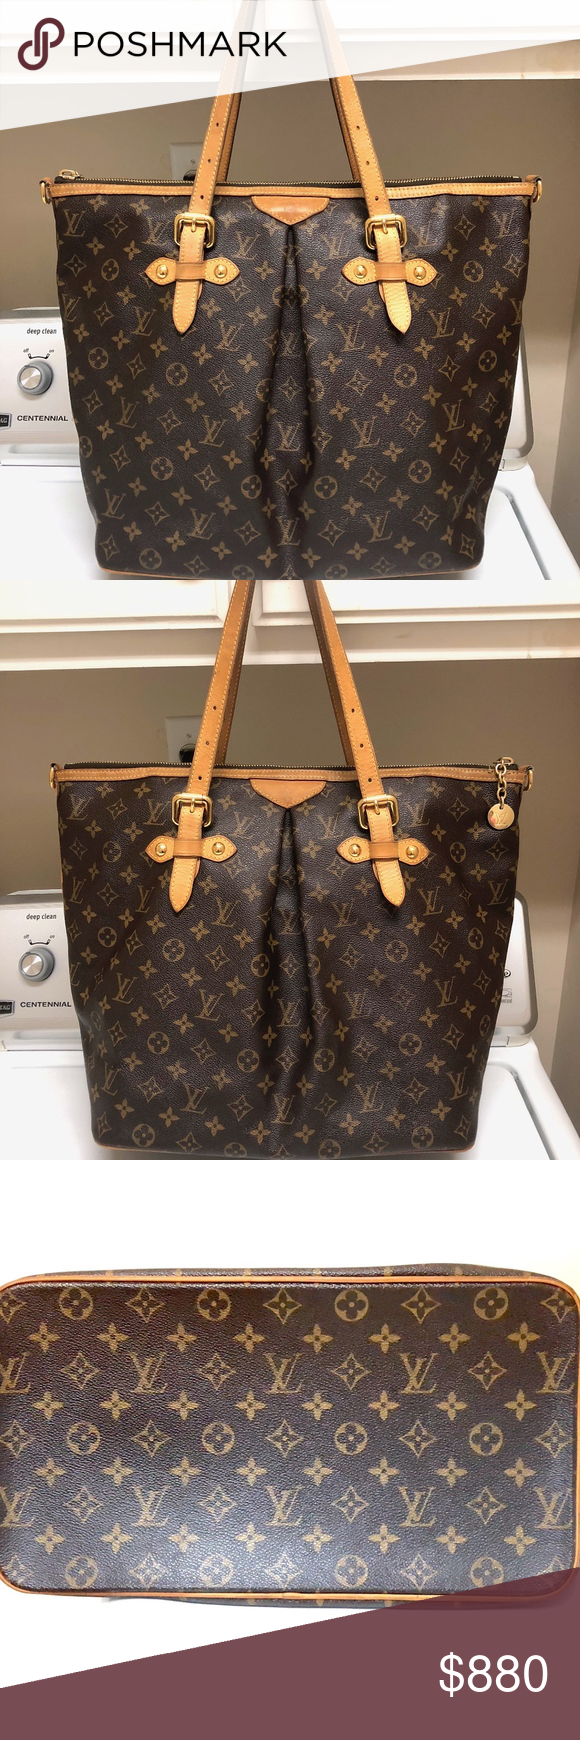 7d02dabfe9 LOUIS VUITTON WOMEN MONOGRAM PALERMO GM SATCHEL Brown and tan monogram  coated canvas Louis Vuitton Palermo